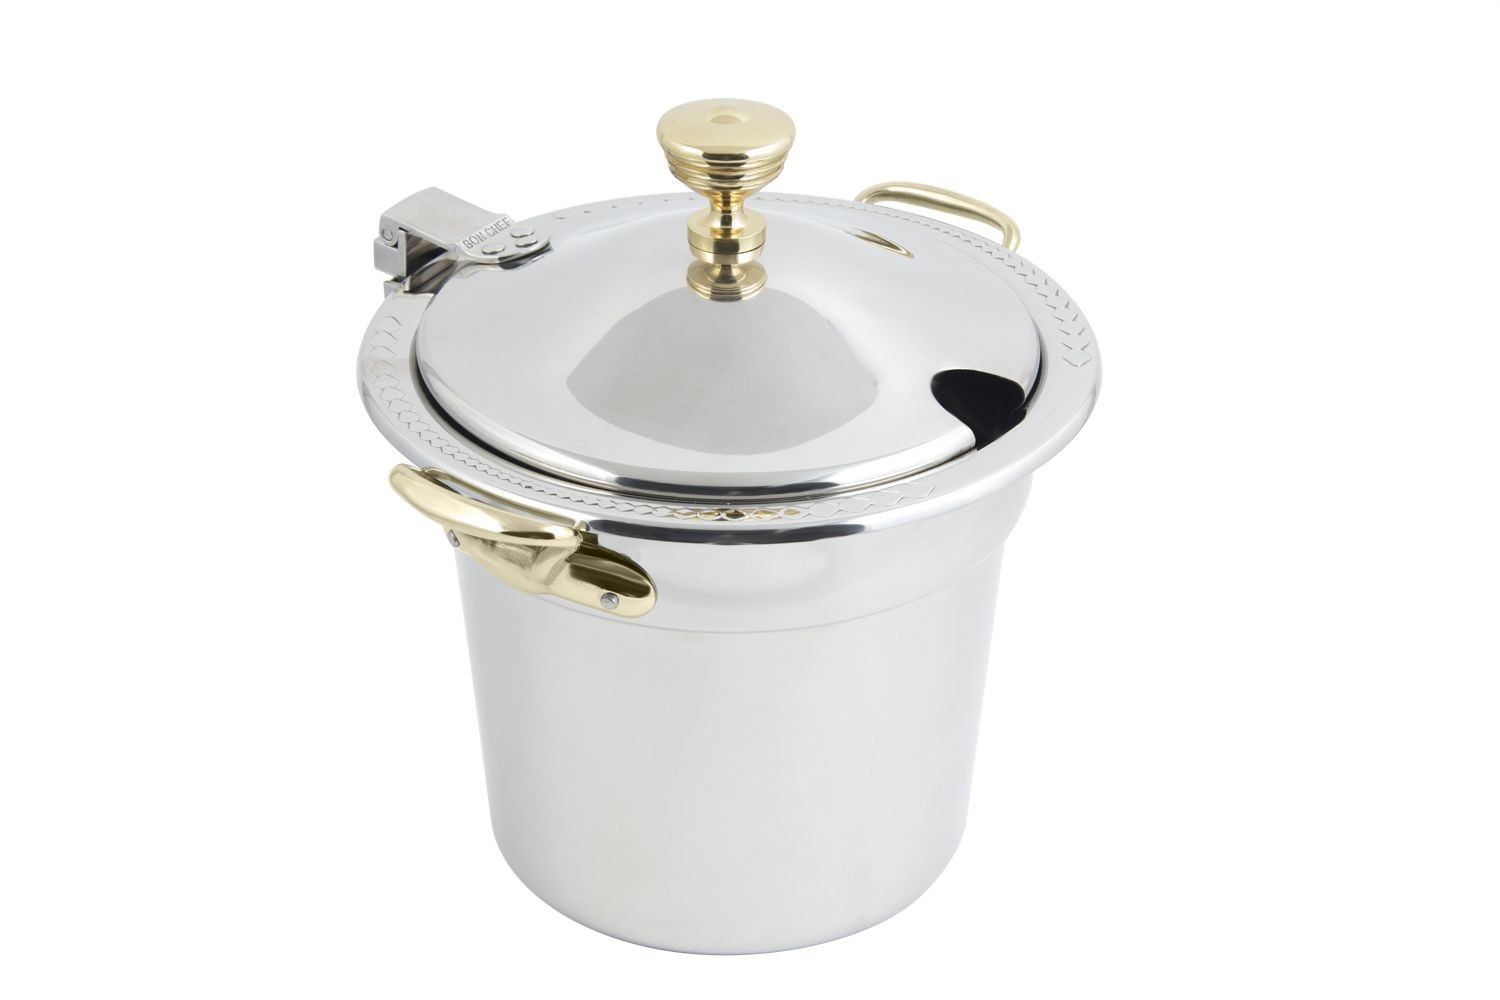 Bon Chef 5411WHCHR Laurel Design Soup Tureen with Hinged Cover and Round Brass Handles, 7 Qt. 1 Pt.